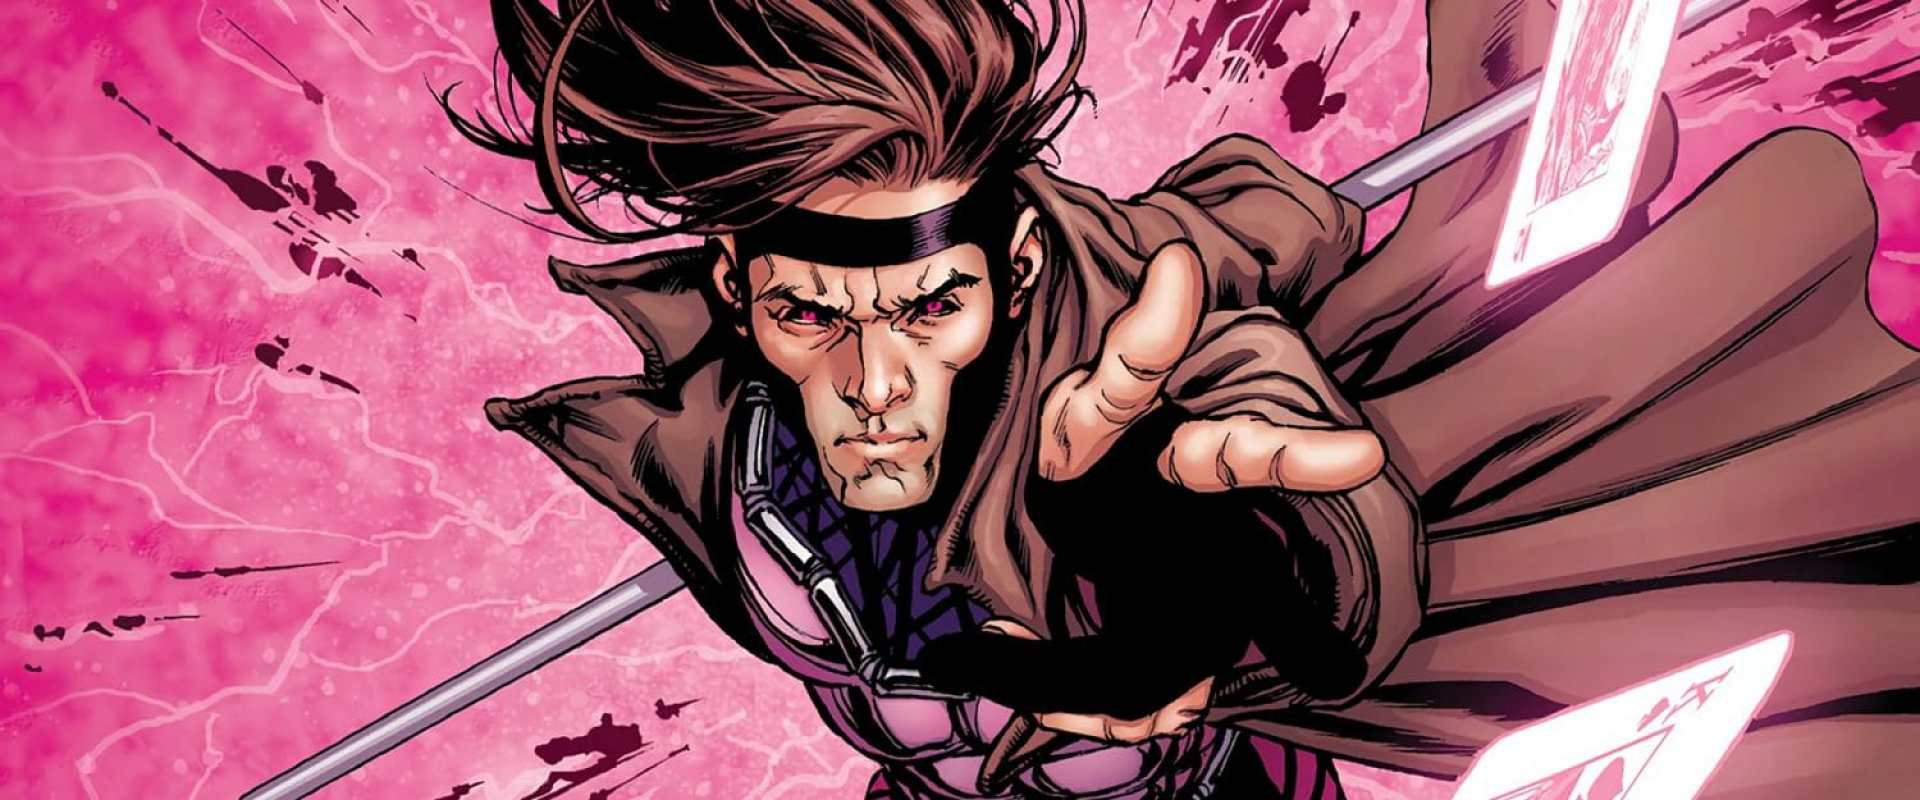 Gambit is headed to the big screen in his own X-Men movie.